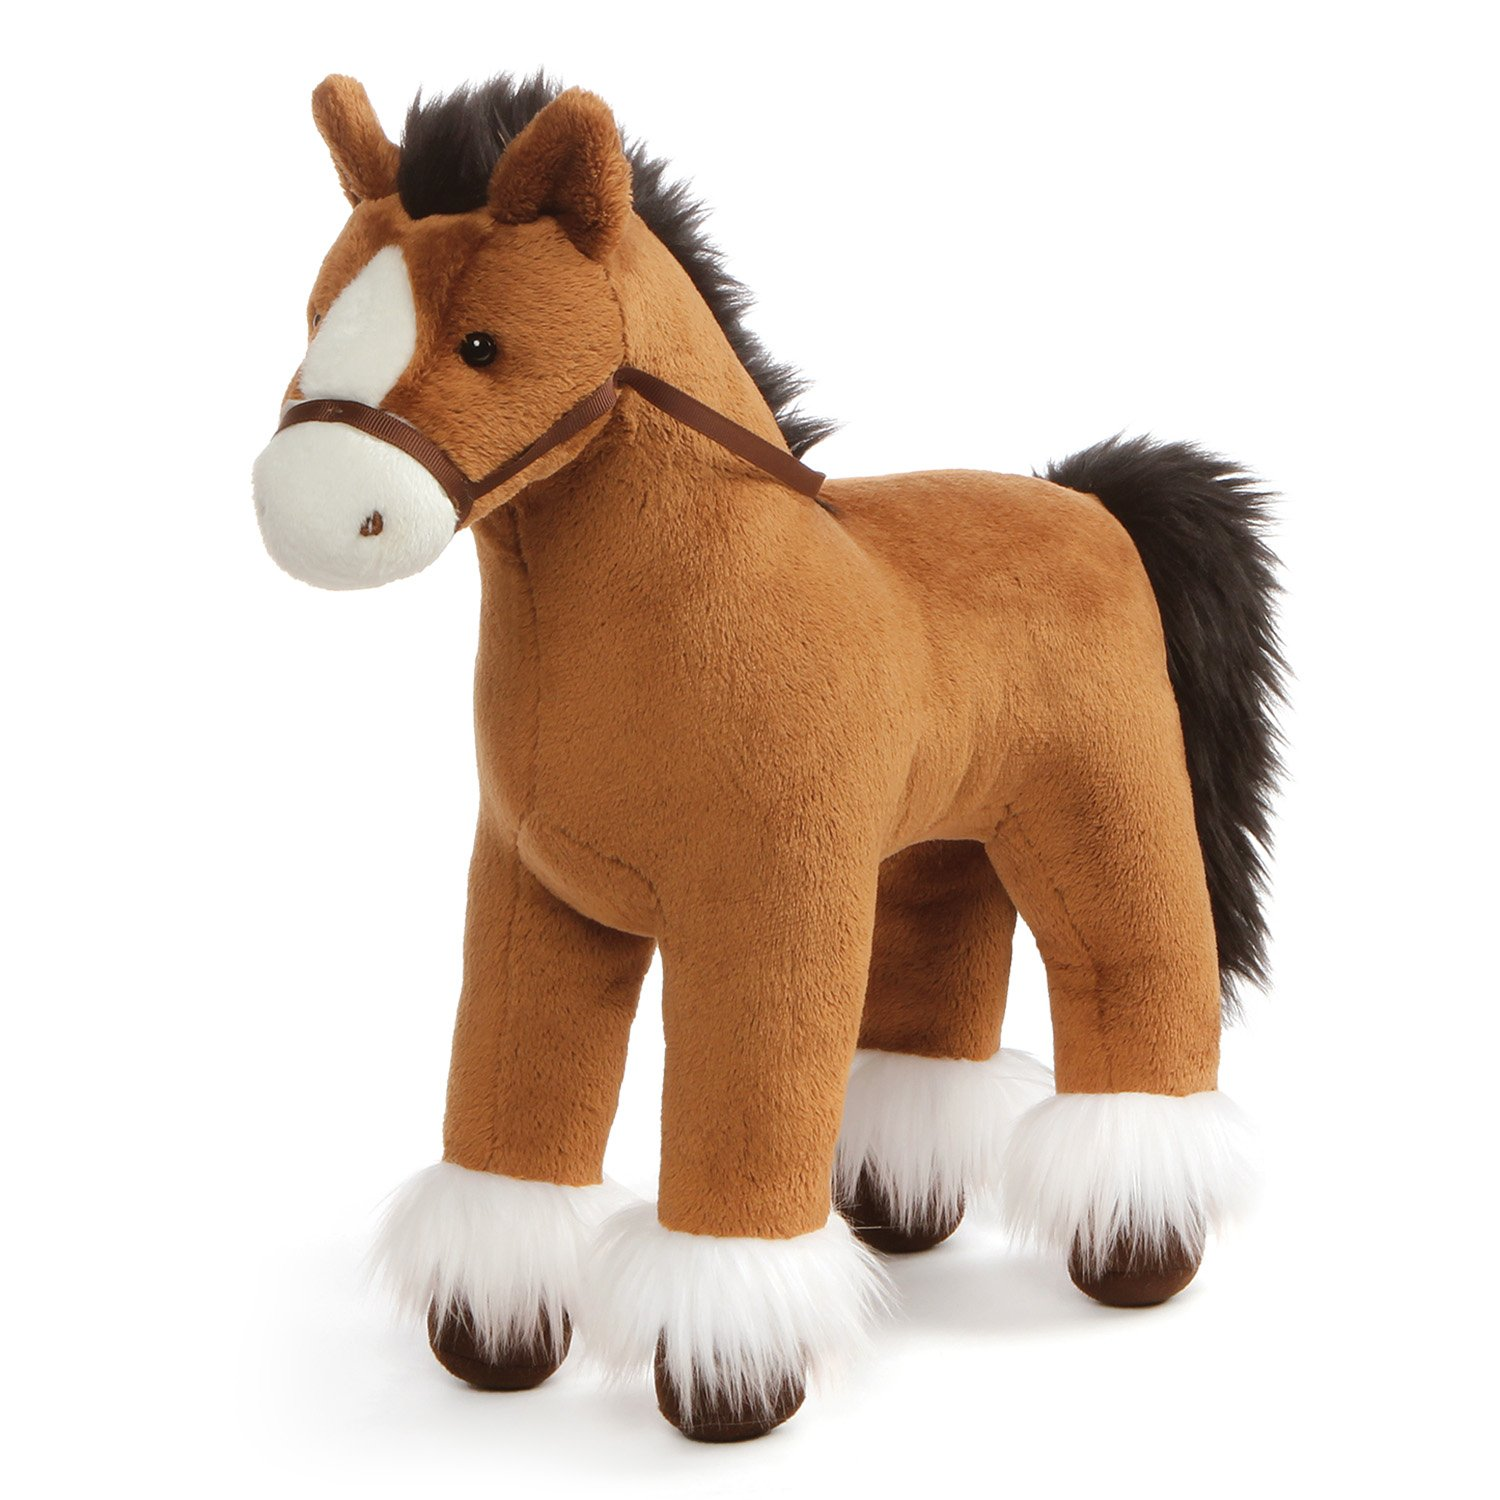 GUND Dakota Clydesdale Horse Standing Stuffed Animal Plush, Brown, 15'' by GUND